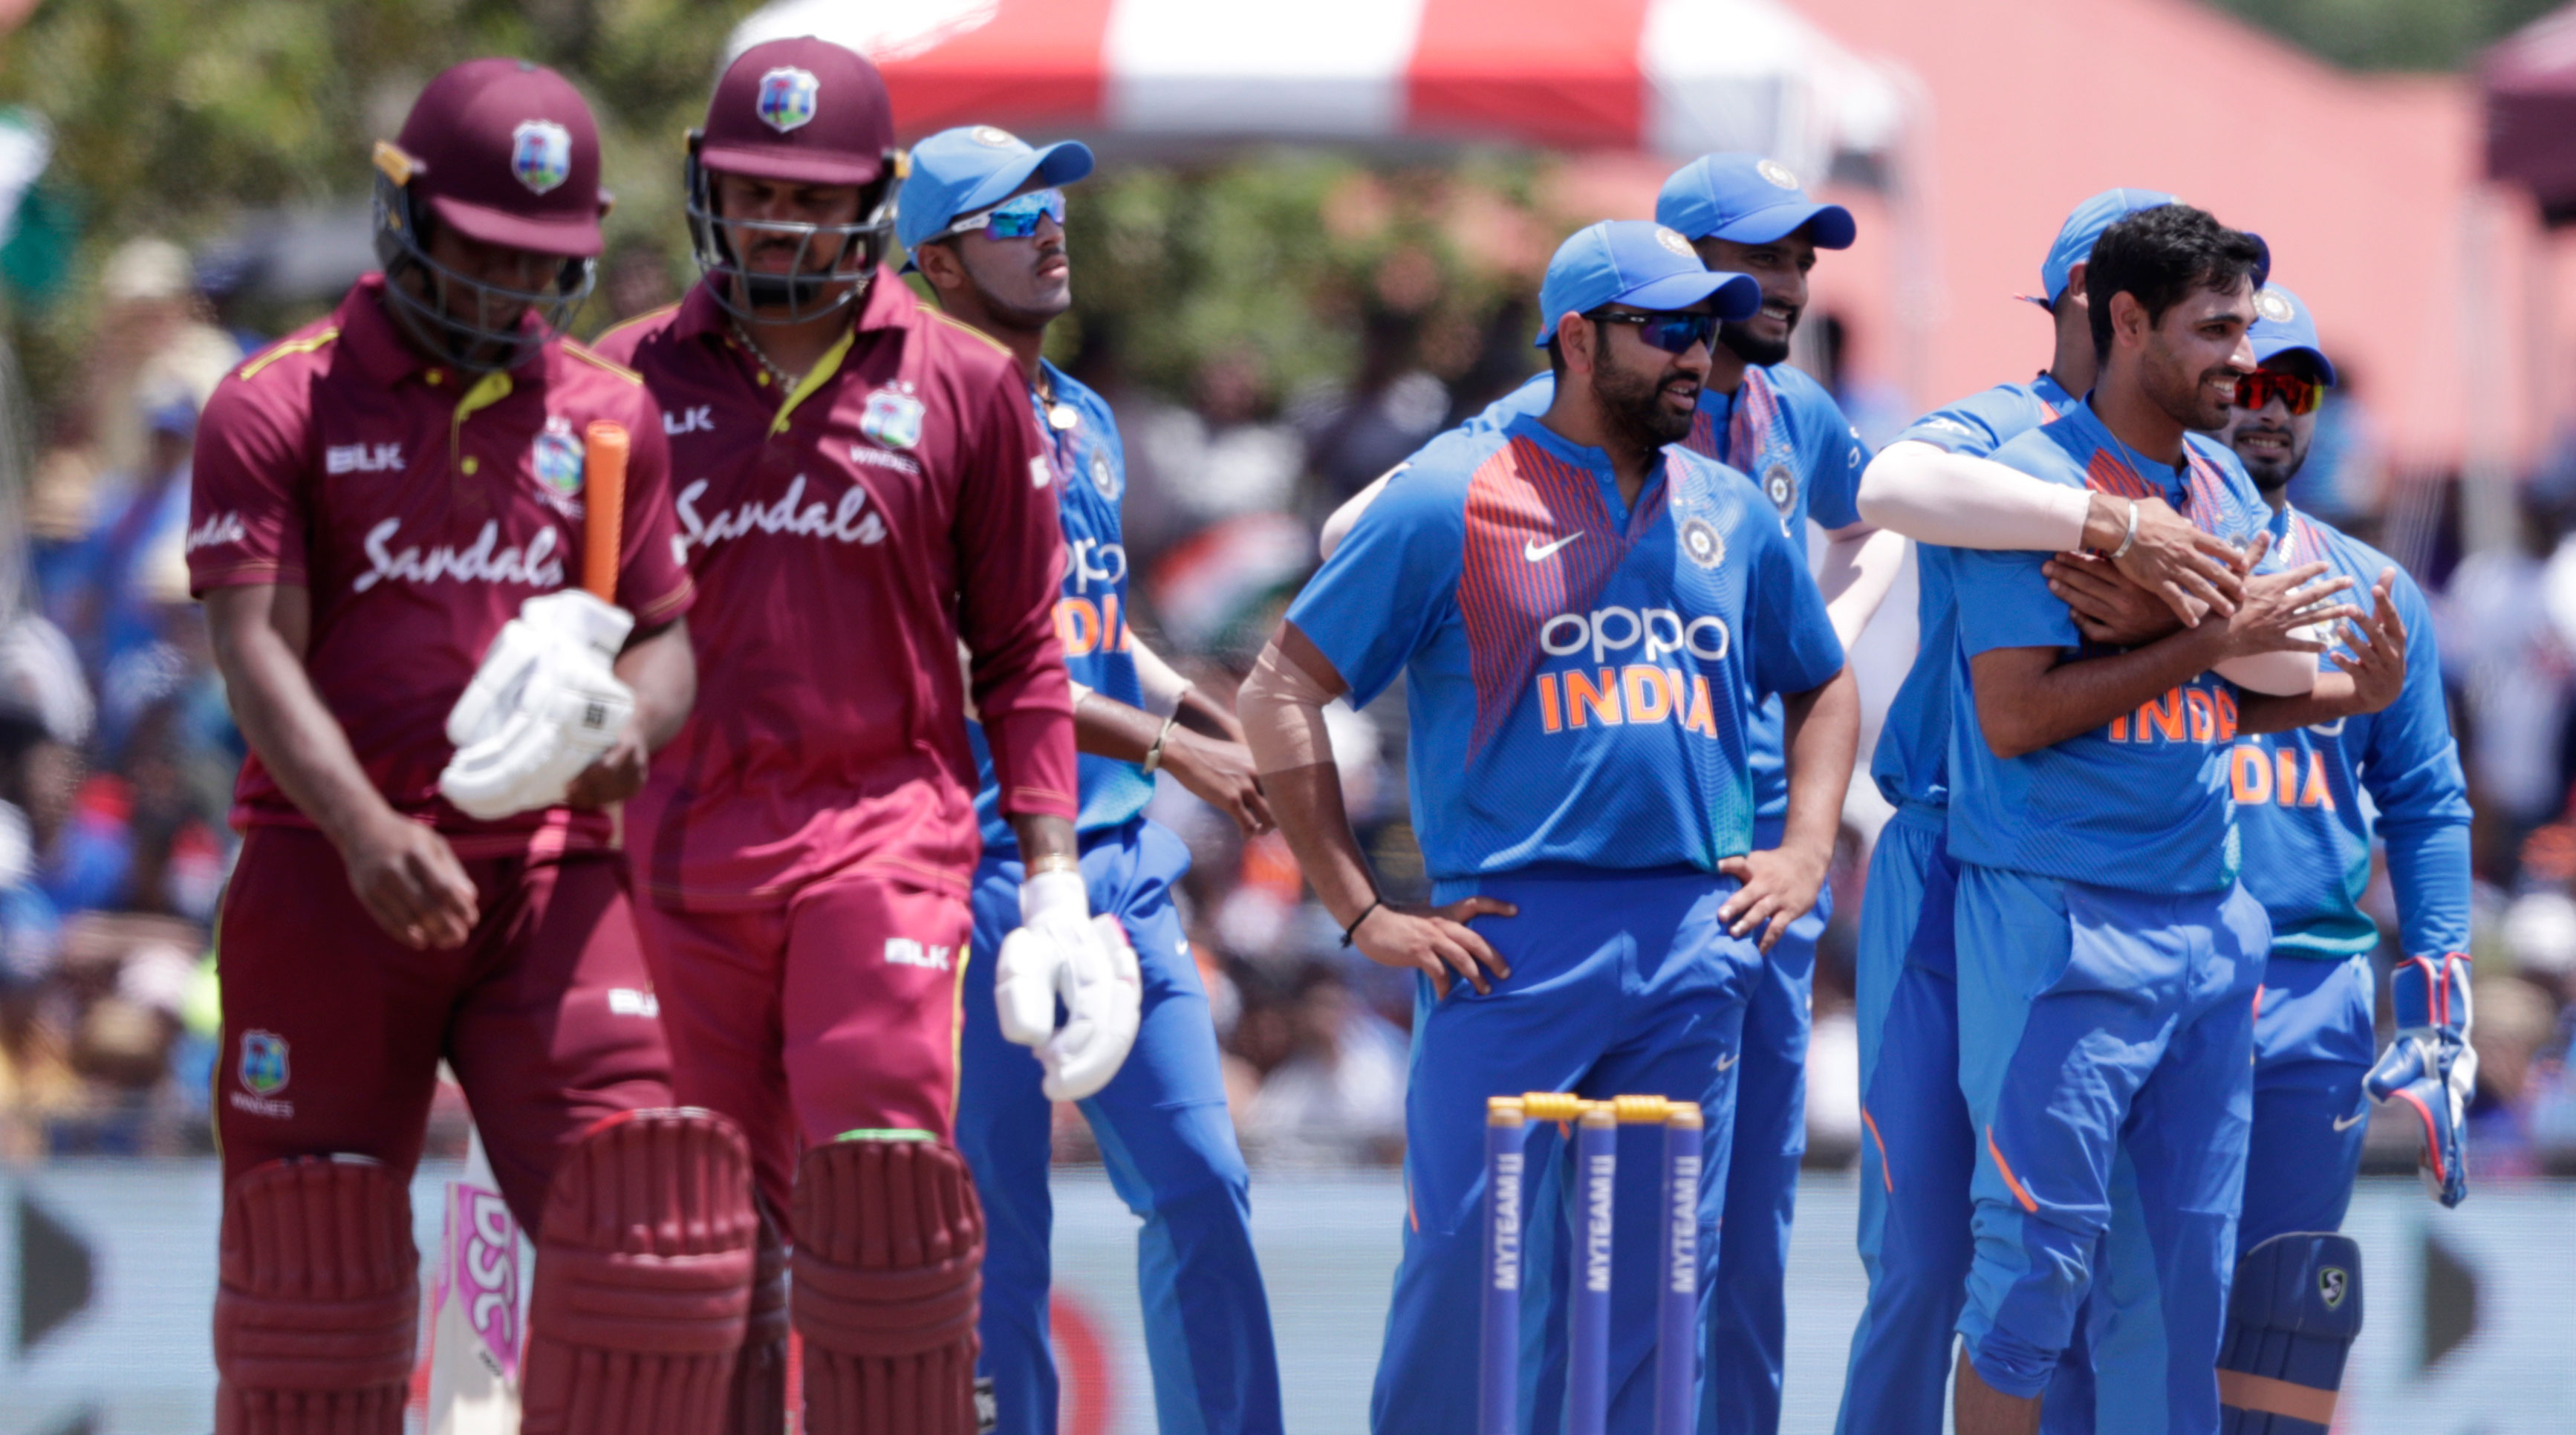 Bhuvneshwar Kumar is congratulated after taking the wicket of West Indies' Evin Lewis during their second Twenty20 international cricket match on August 4, 2019.